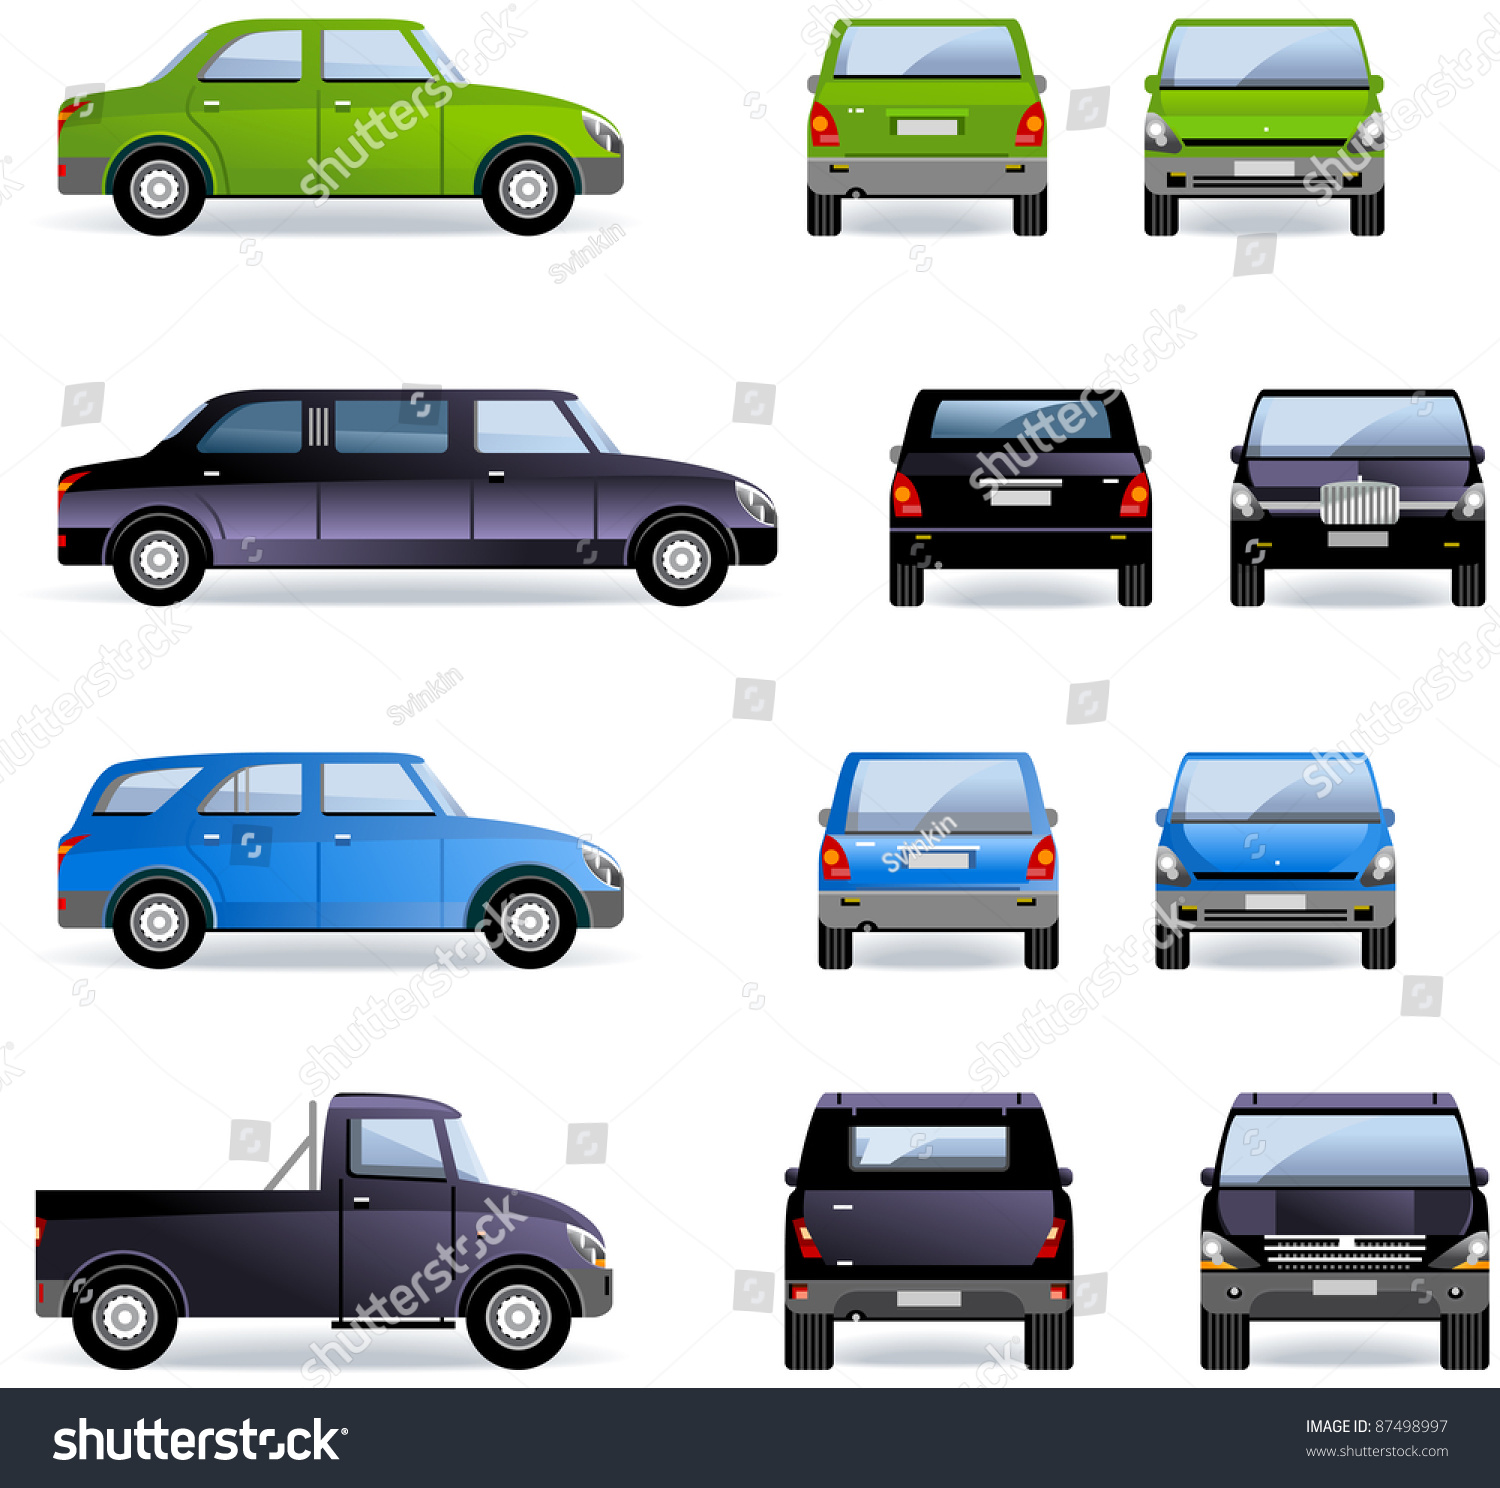 passenger cars part 1 set of the car icons in vector in the side front and back views. Black Bedroom Furniture Sets. Home Design Ideas